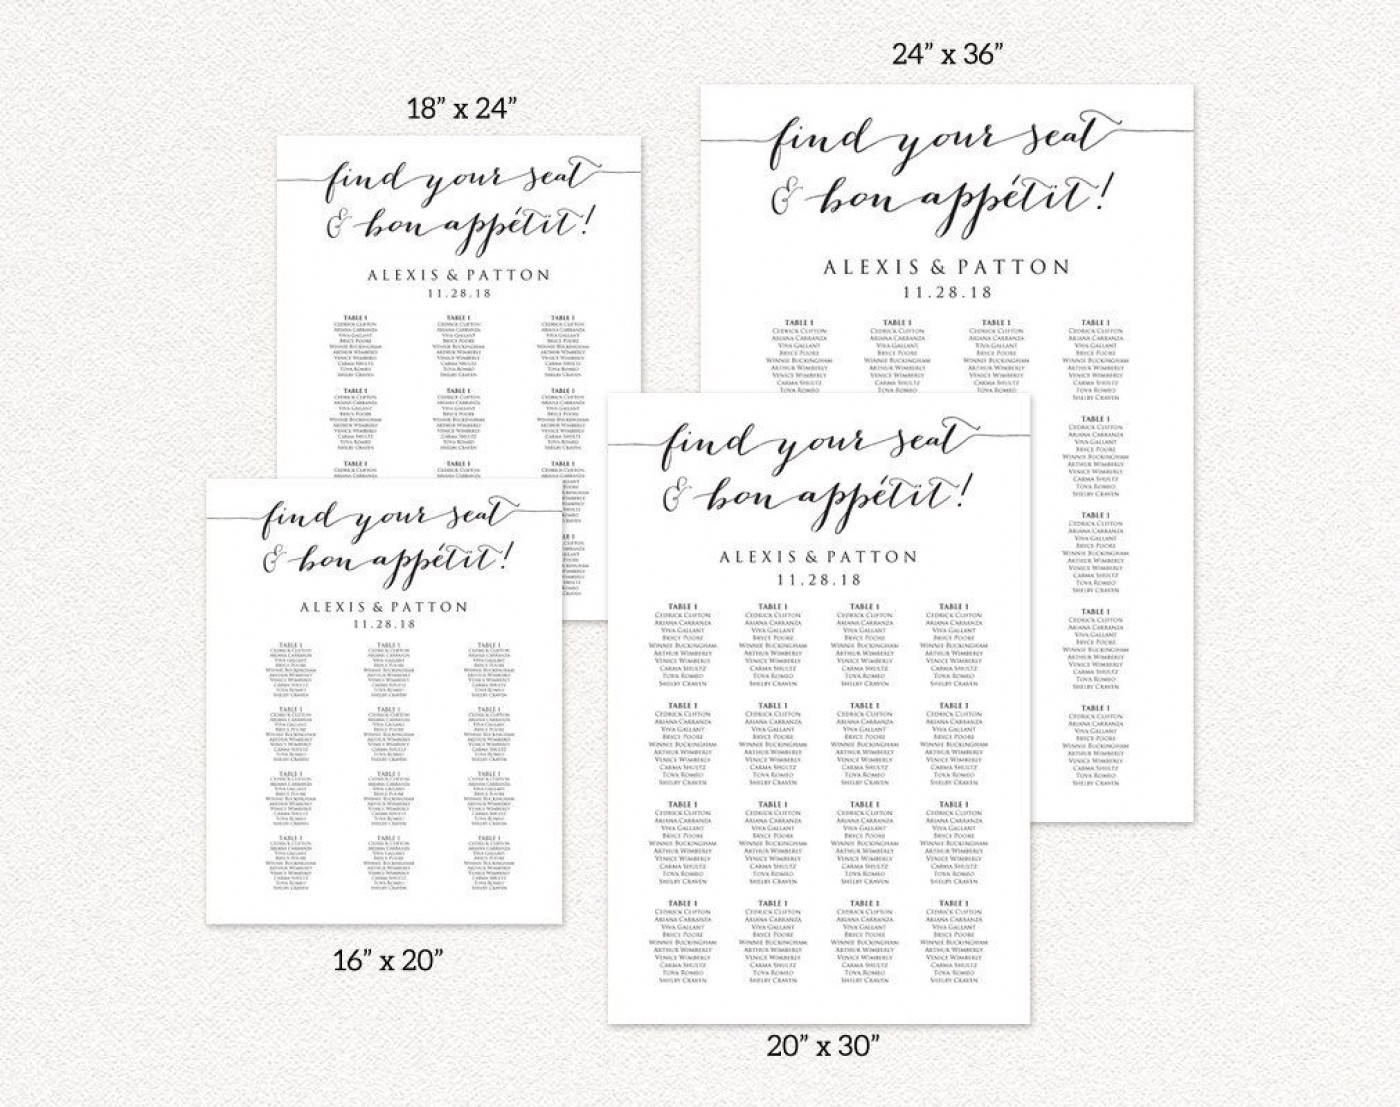 008 Formidable Seating Chart Wedding Template Idea  Alphabetical Word Table Plan1400